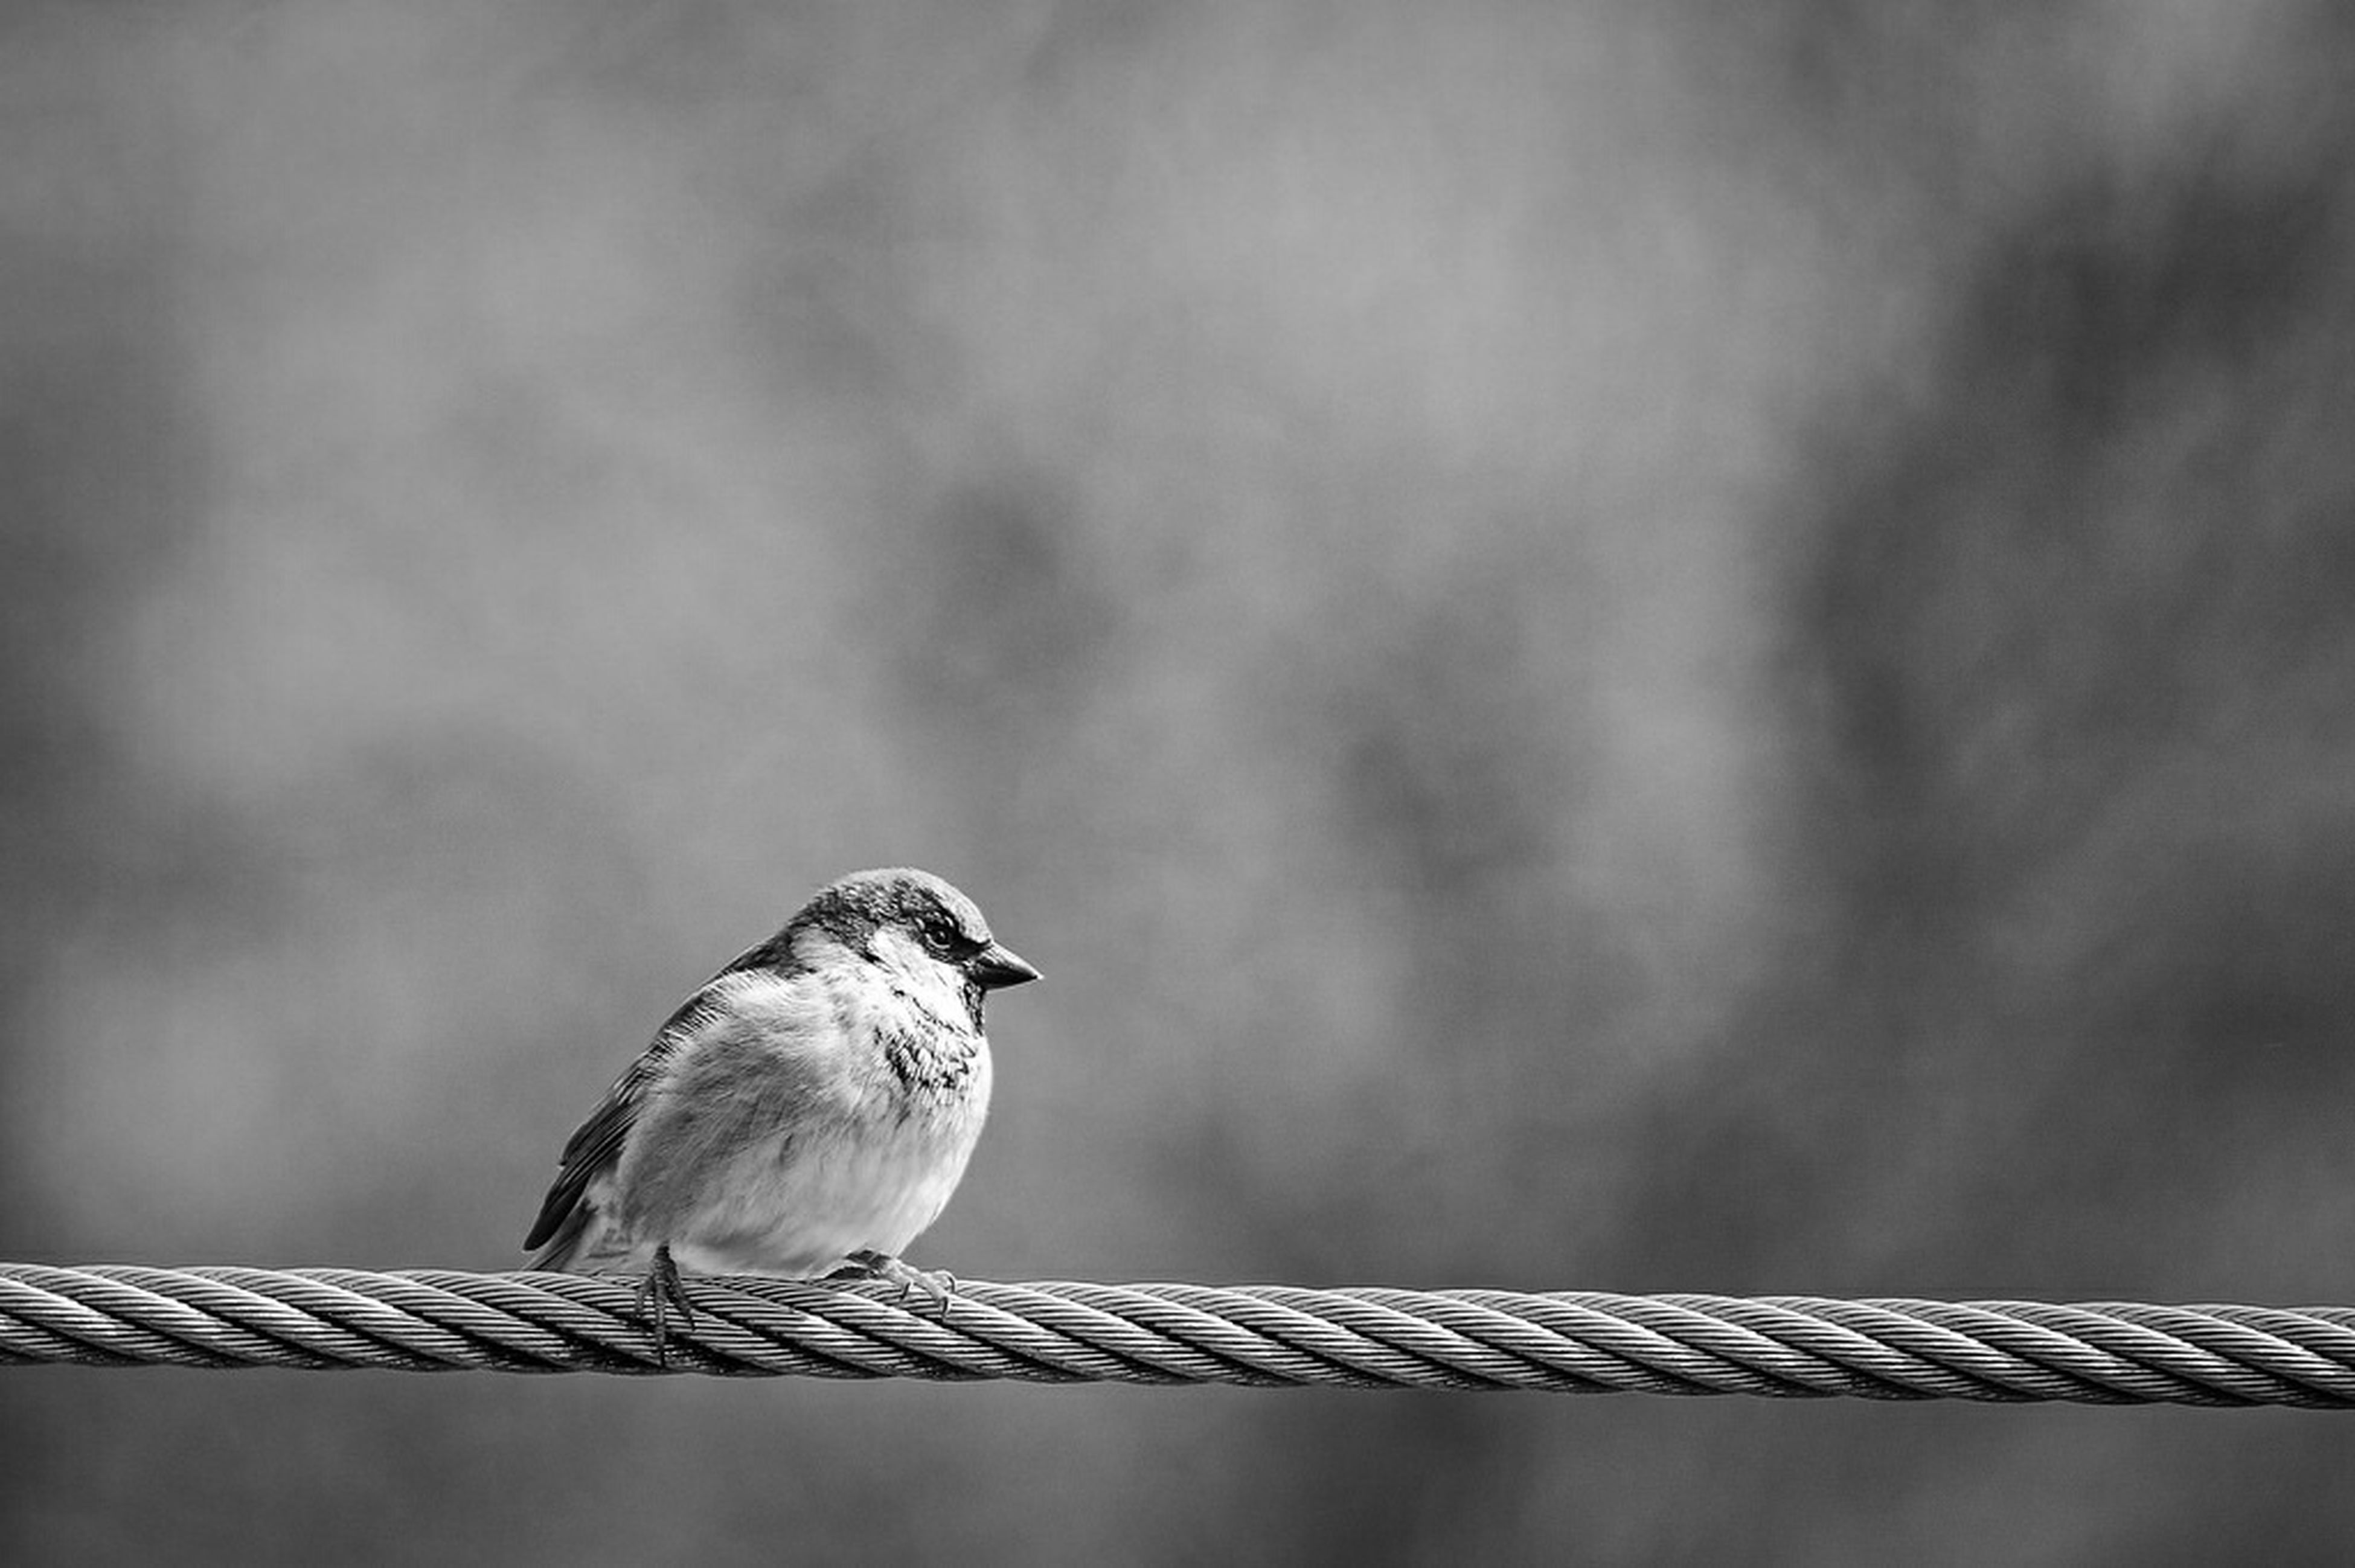 animal themes, bird, animals in the wild, wildlife, perching, one animal, low angle view, focus on foreground, two animals, seagull, pigeon, railing, sky, beak, avian, nature, outdoors, day, close-up, full length